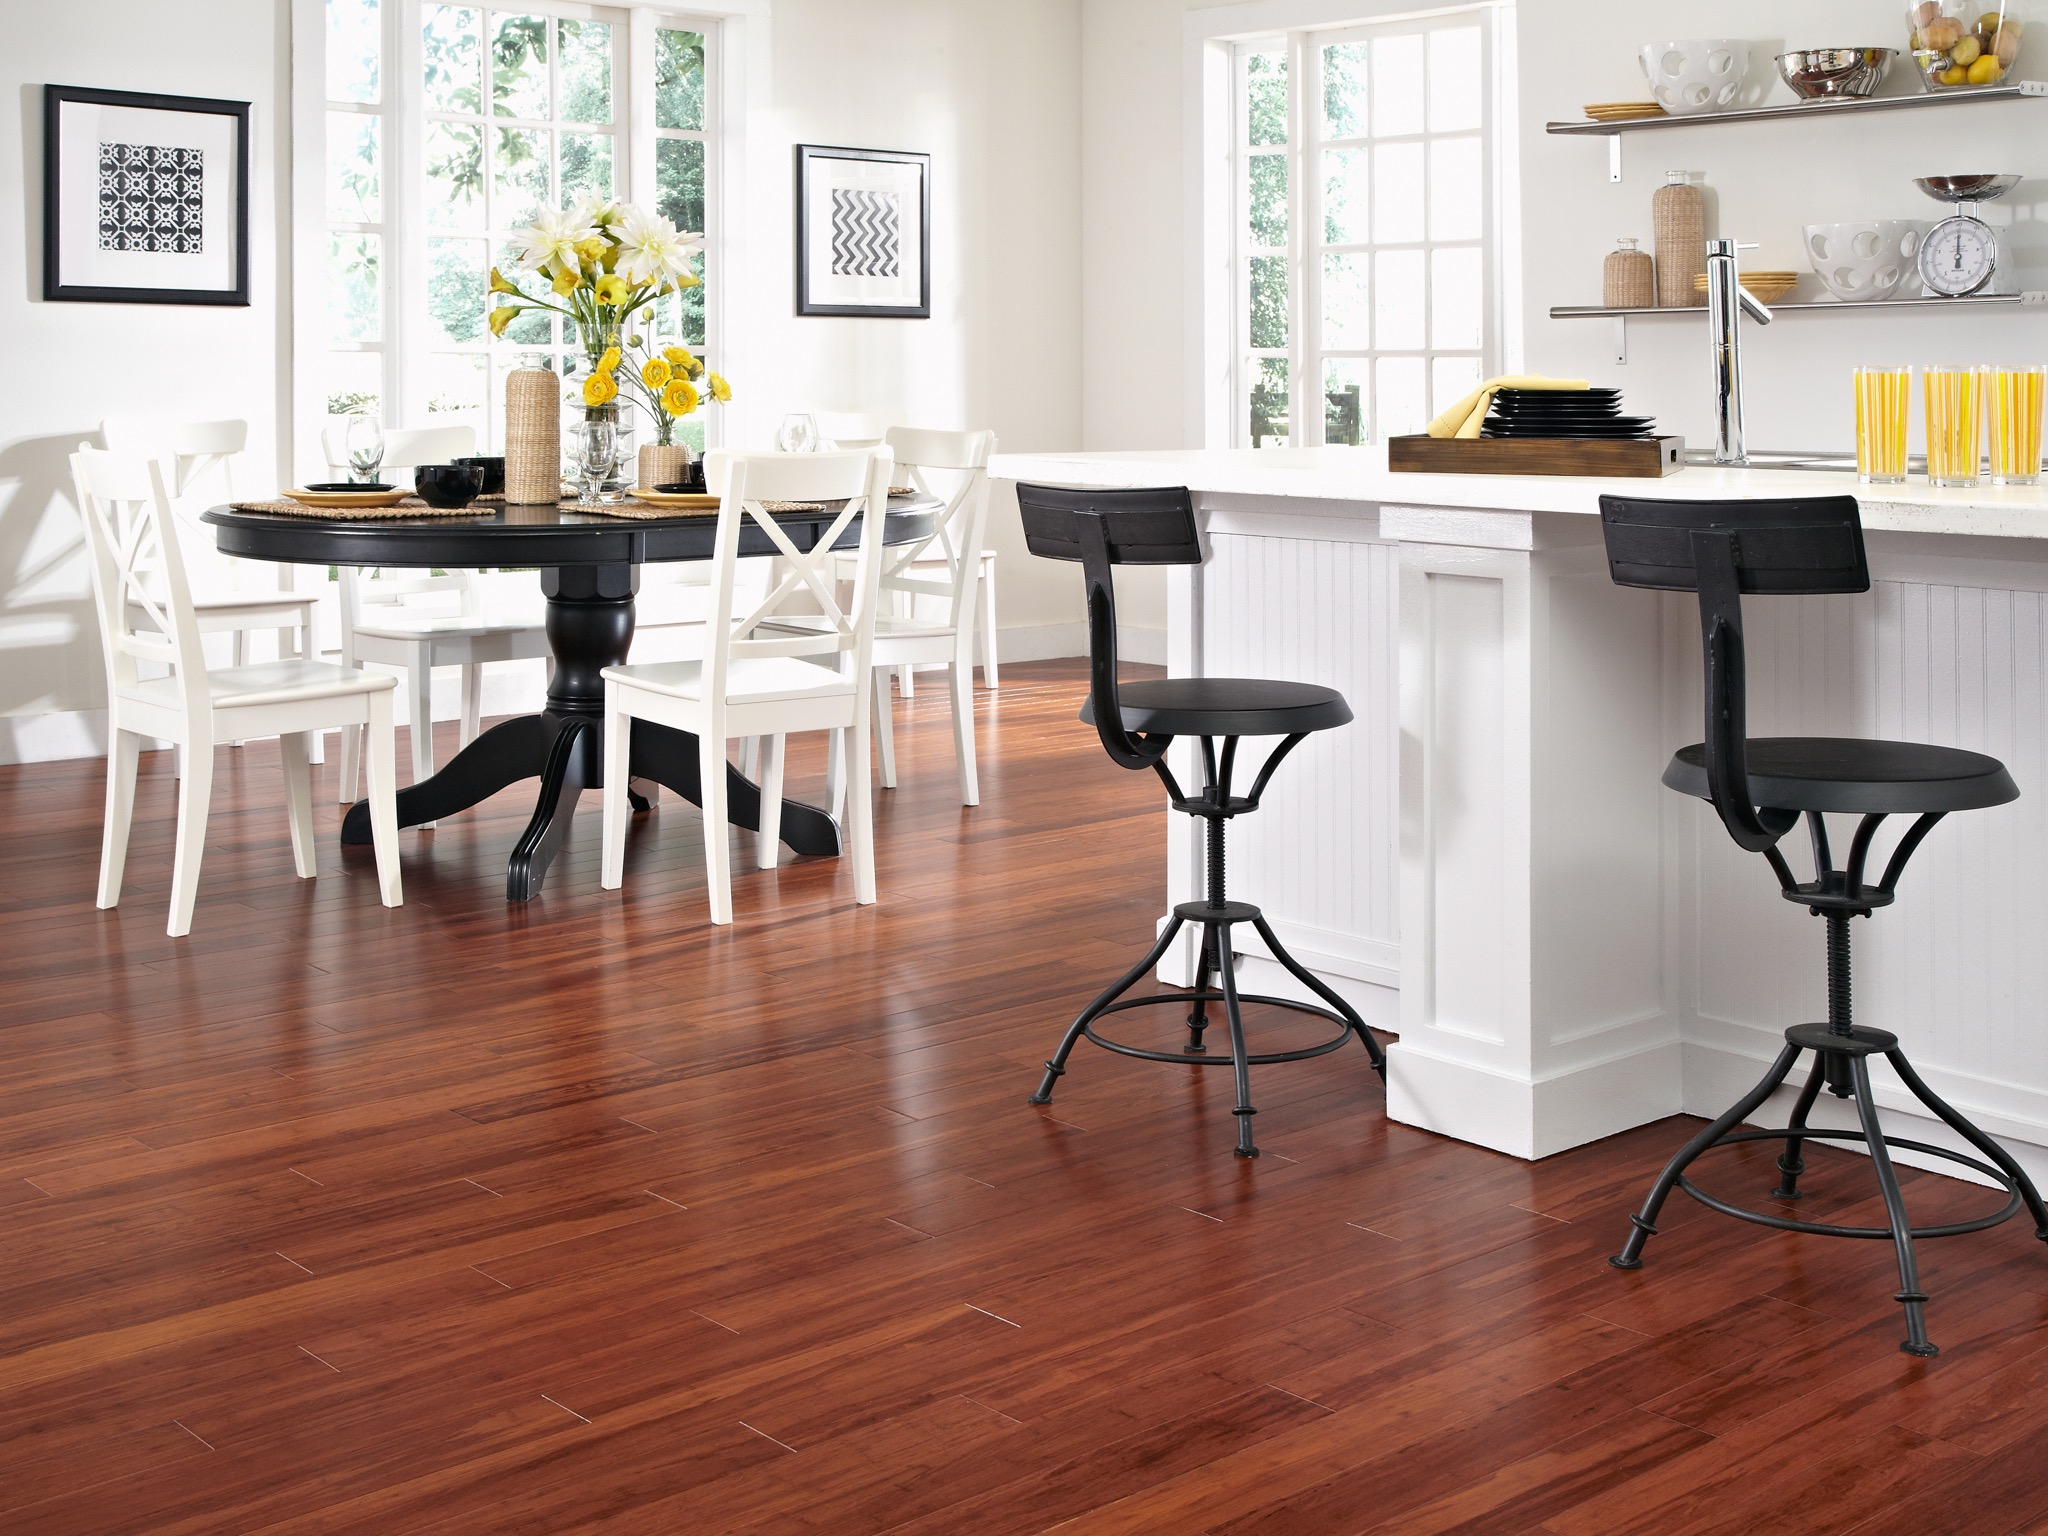 White Dining Area With Bamboo Flooring And Black Table (Image 20 of 20)